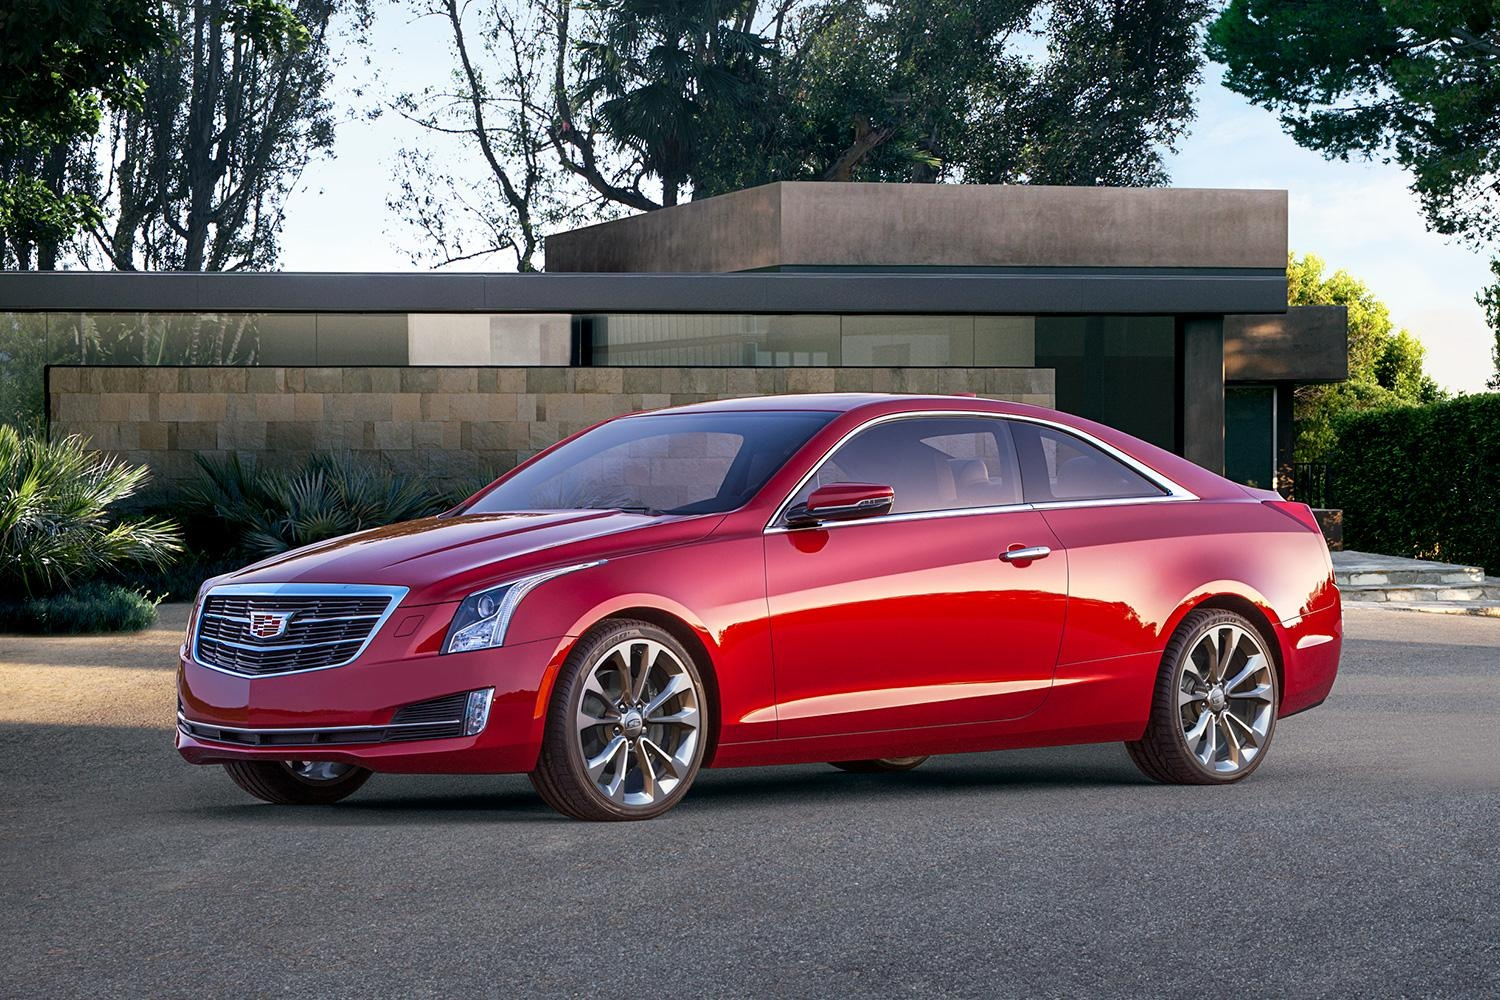 cadillac slots updated 3 6 liter engine and transmission into 2016 ats and cts. Black Bedroom Furniture Sets. Home Design Ideas